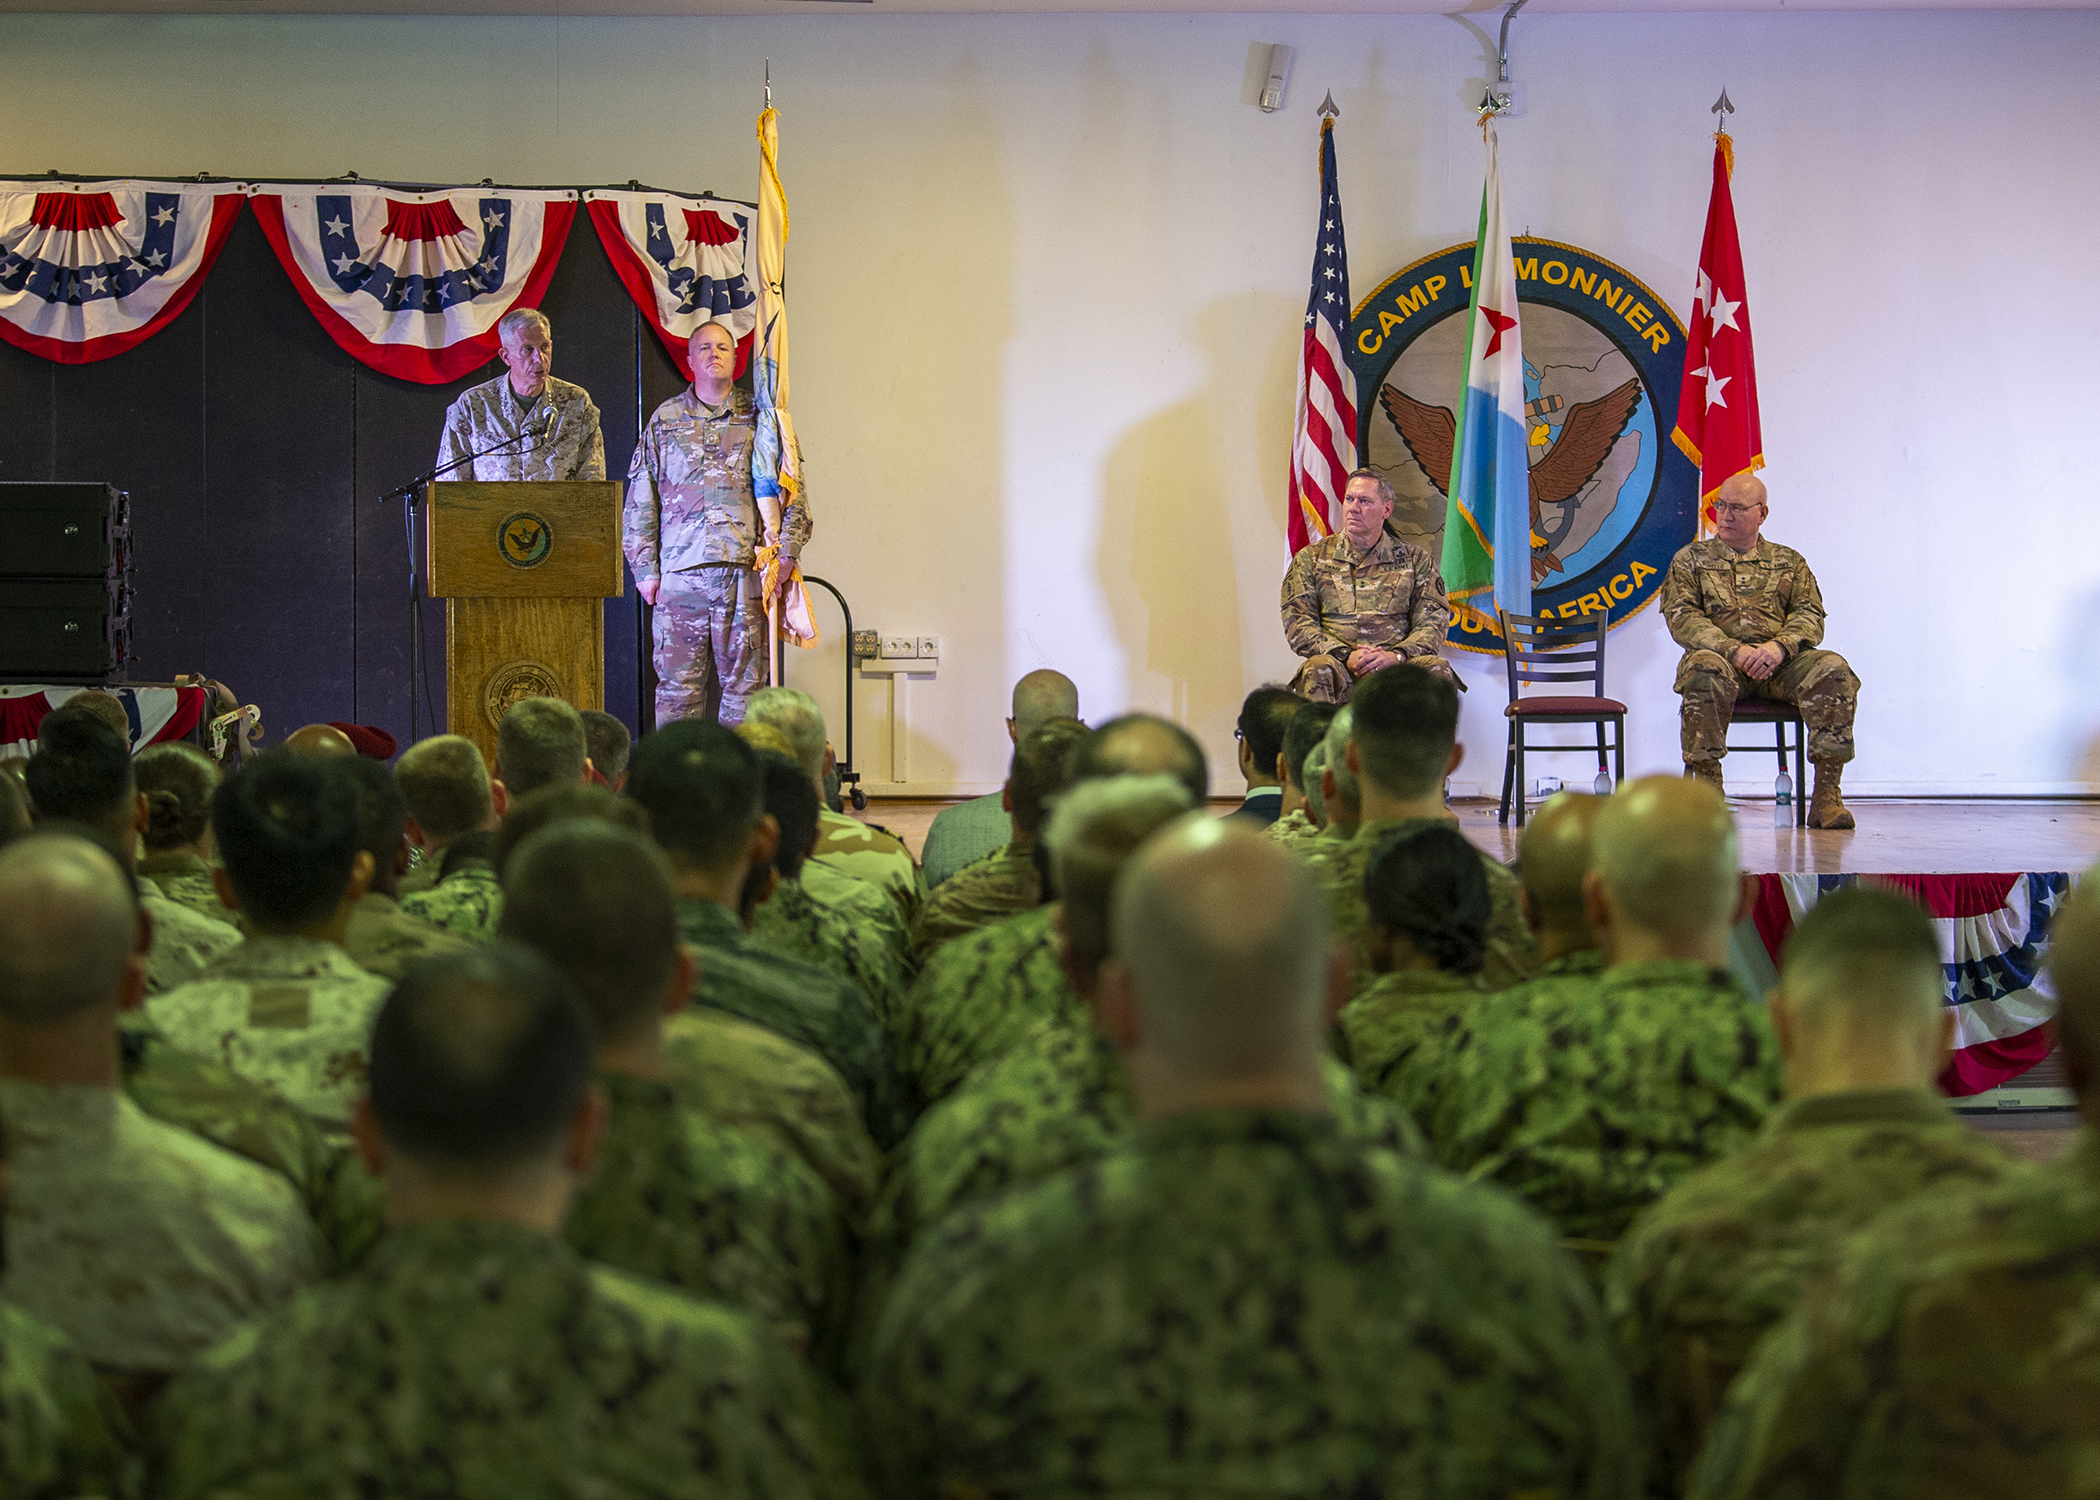 U.S. Marine Corps Gen. Thomas Waldhauser, commander of U.S. Africa Command, middle, gives remarks during a change of command ceremony for Combined Joint Task Force-Horn of Africa (CJTF-HOA) at Camp Lemonnier, Djibouti, June 12, 2019. U.S. Army Maj. Gen. James D. Craig, outgoing commanding general of CJTF-HOA, transferred responsibility to U.S. Army Maj. Gen. Michael D. Turello in the ceremony with Waldhauser as the presiding officer. (U.S. Air Force photo by Tech. Sgt. Shawn Nickel)